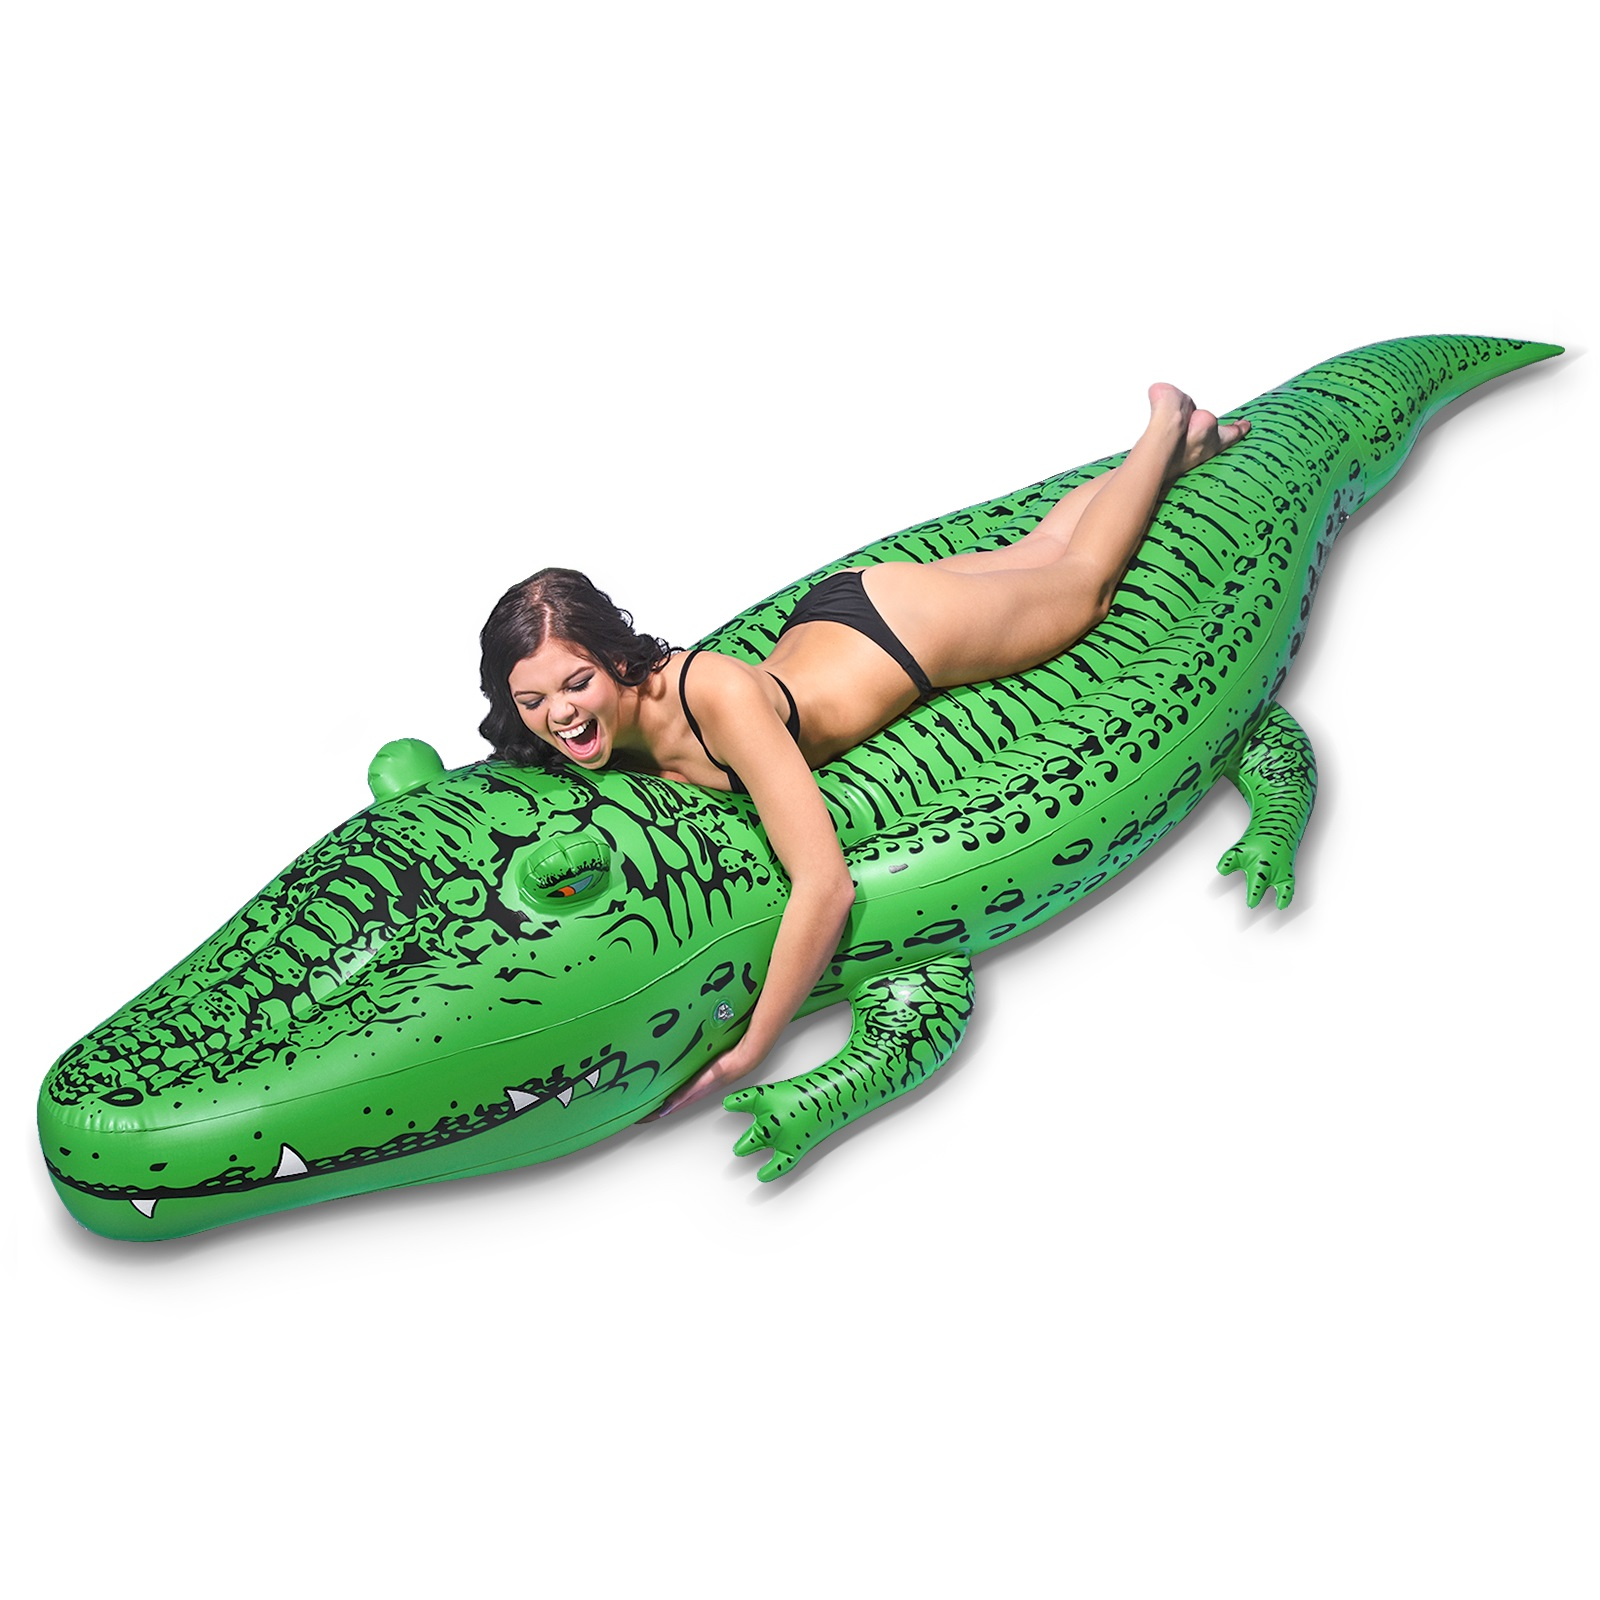 GoFloats Giant Inflatable Gator Pool Float Lounger, Premium Quality and Over 11' Long, for Adults and Kids